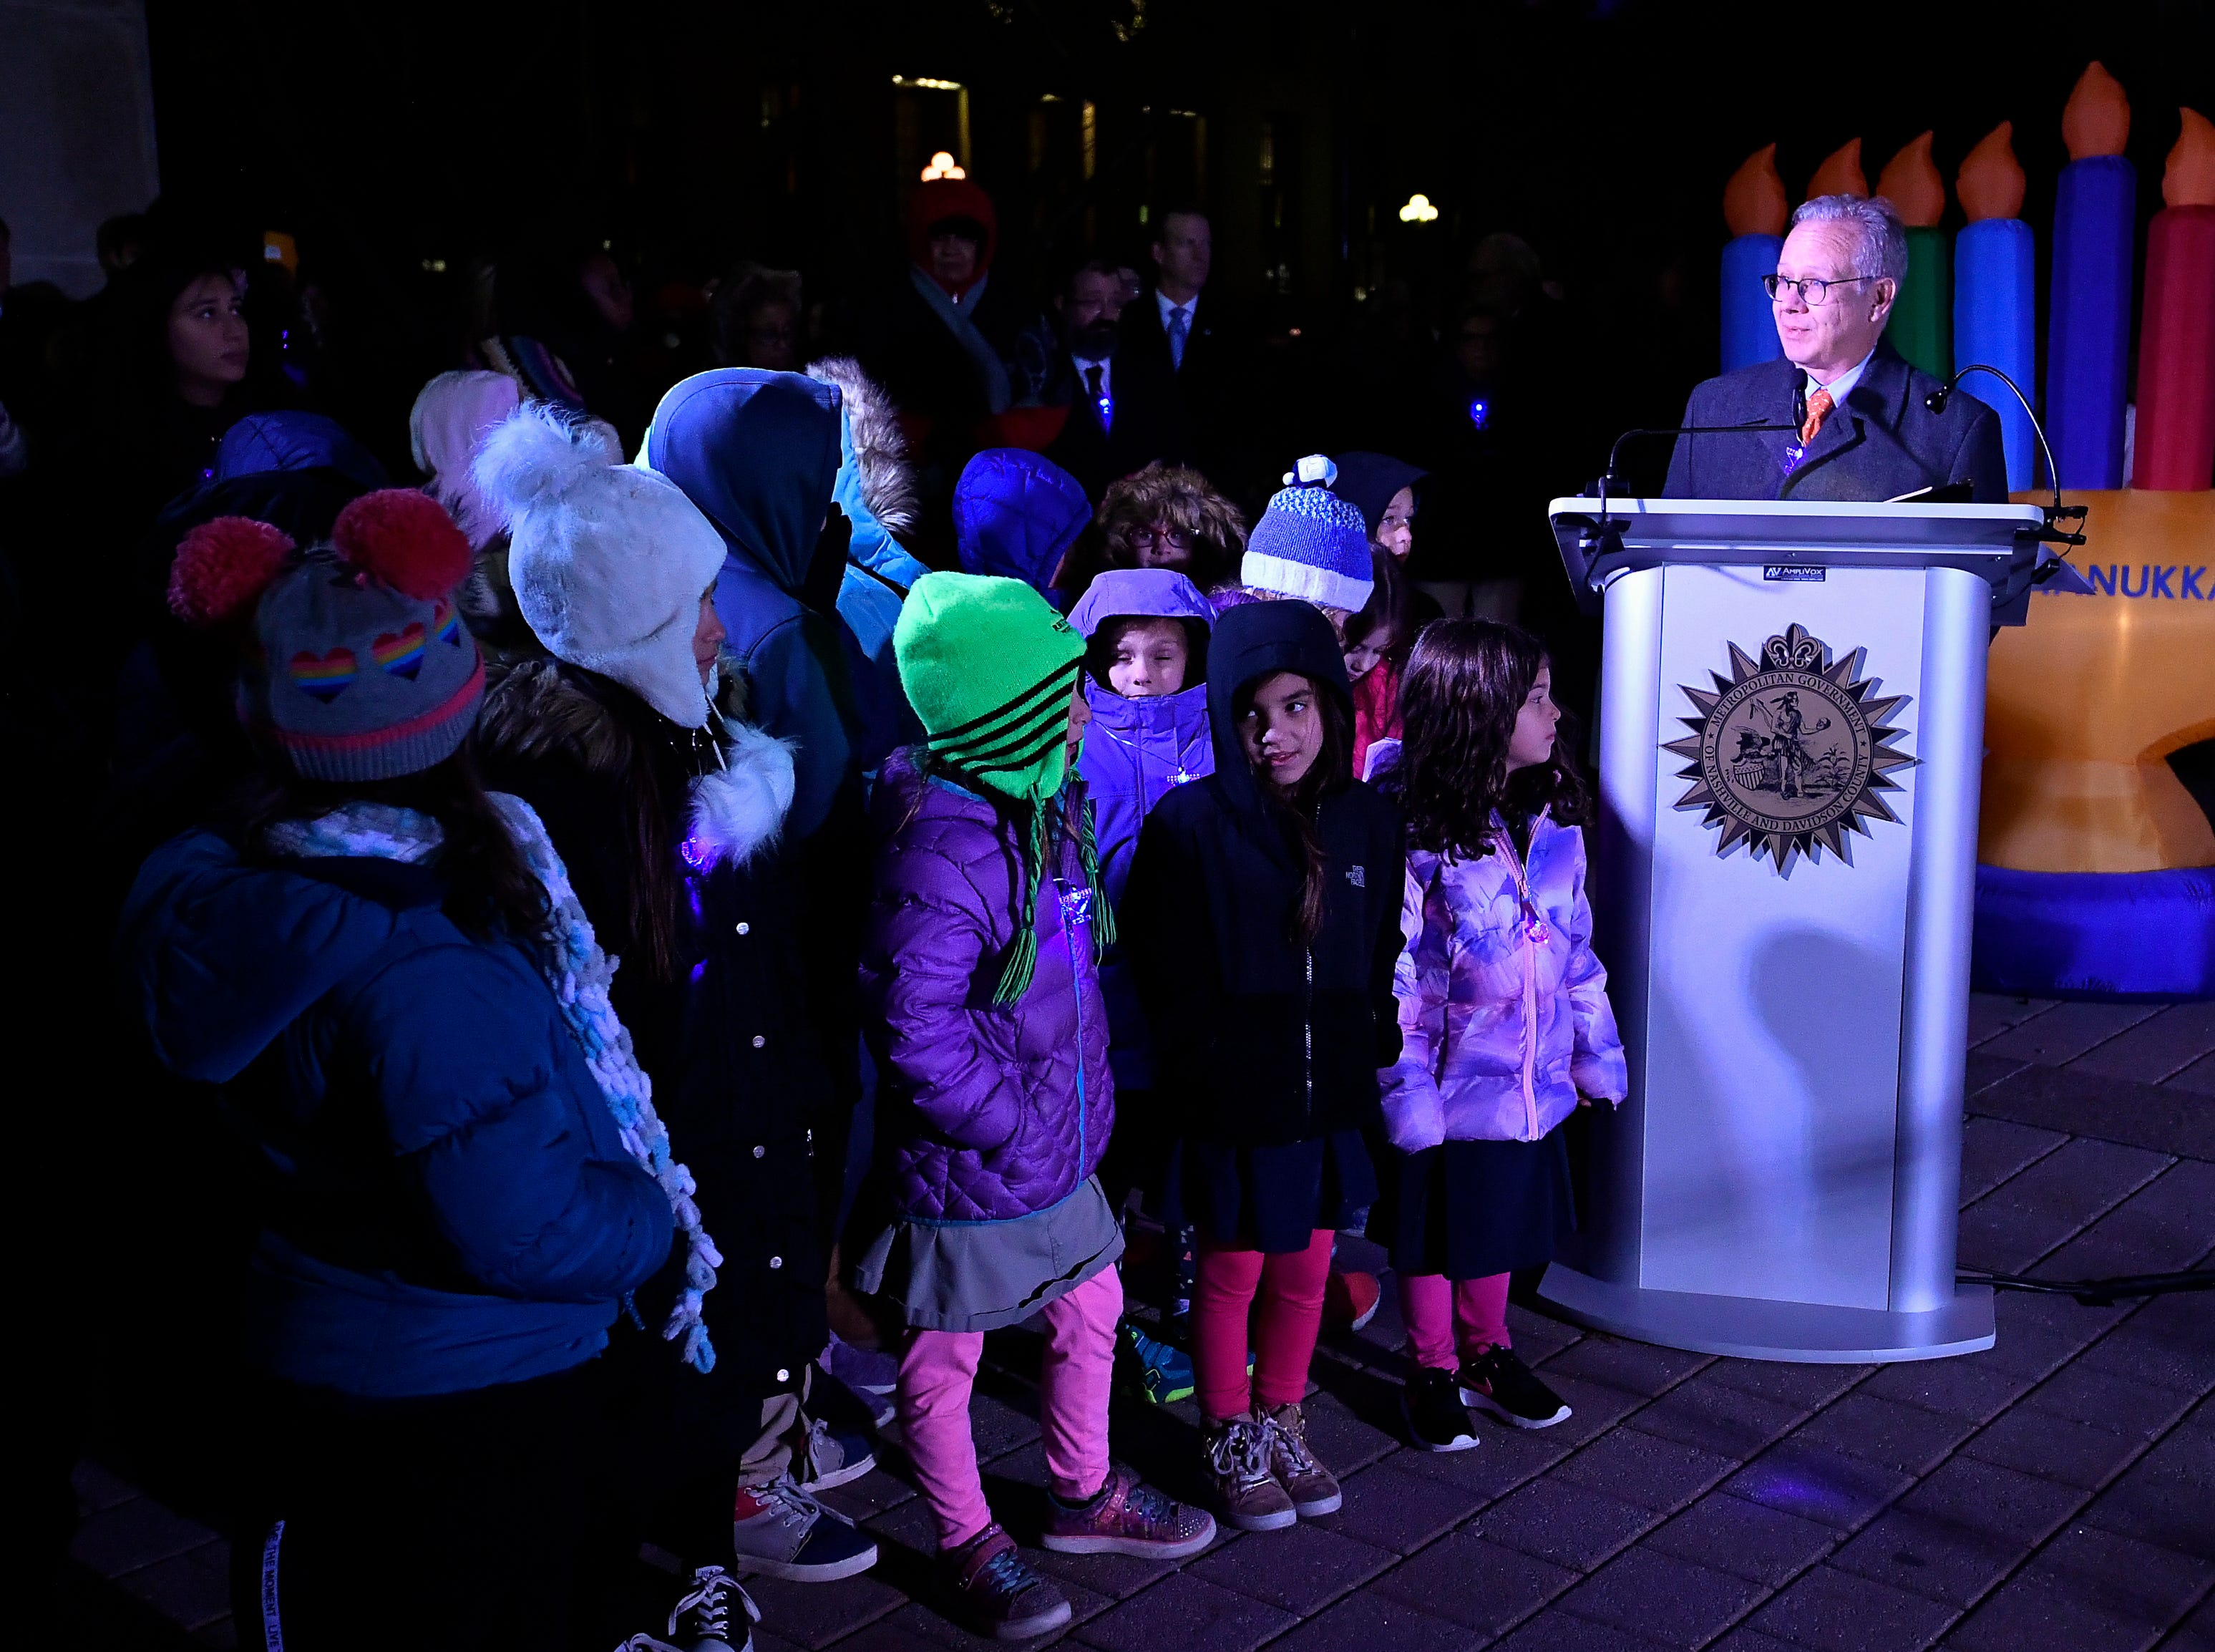 Mayor David Briley addresses the crowd during a Chanukah menorah lighting ceremony at Public Square Park Tuesday, Dec. 4, 2018, in Nashville, Tenn.